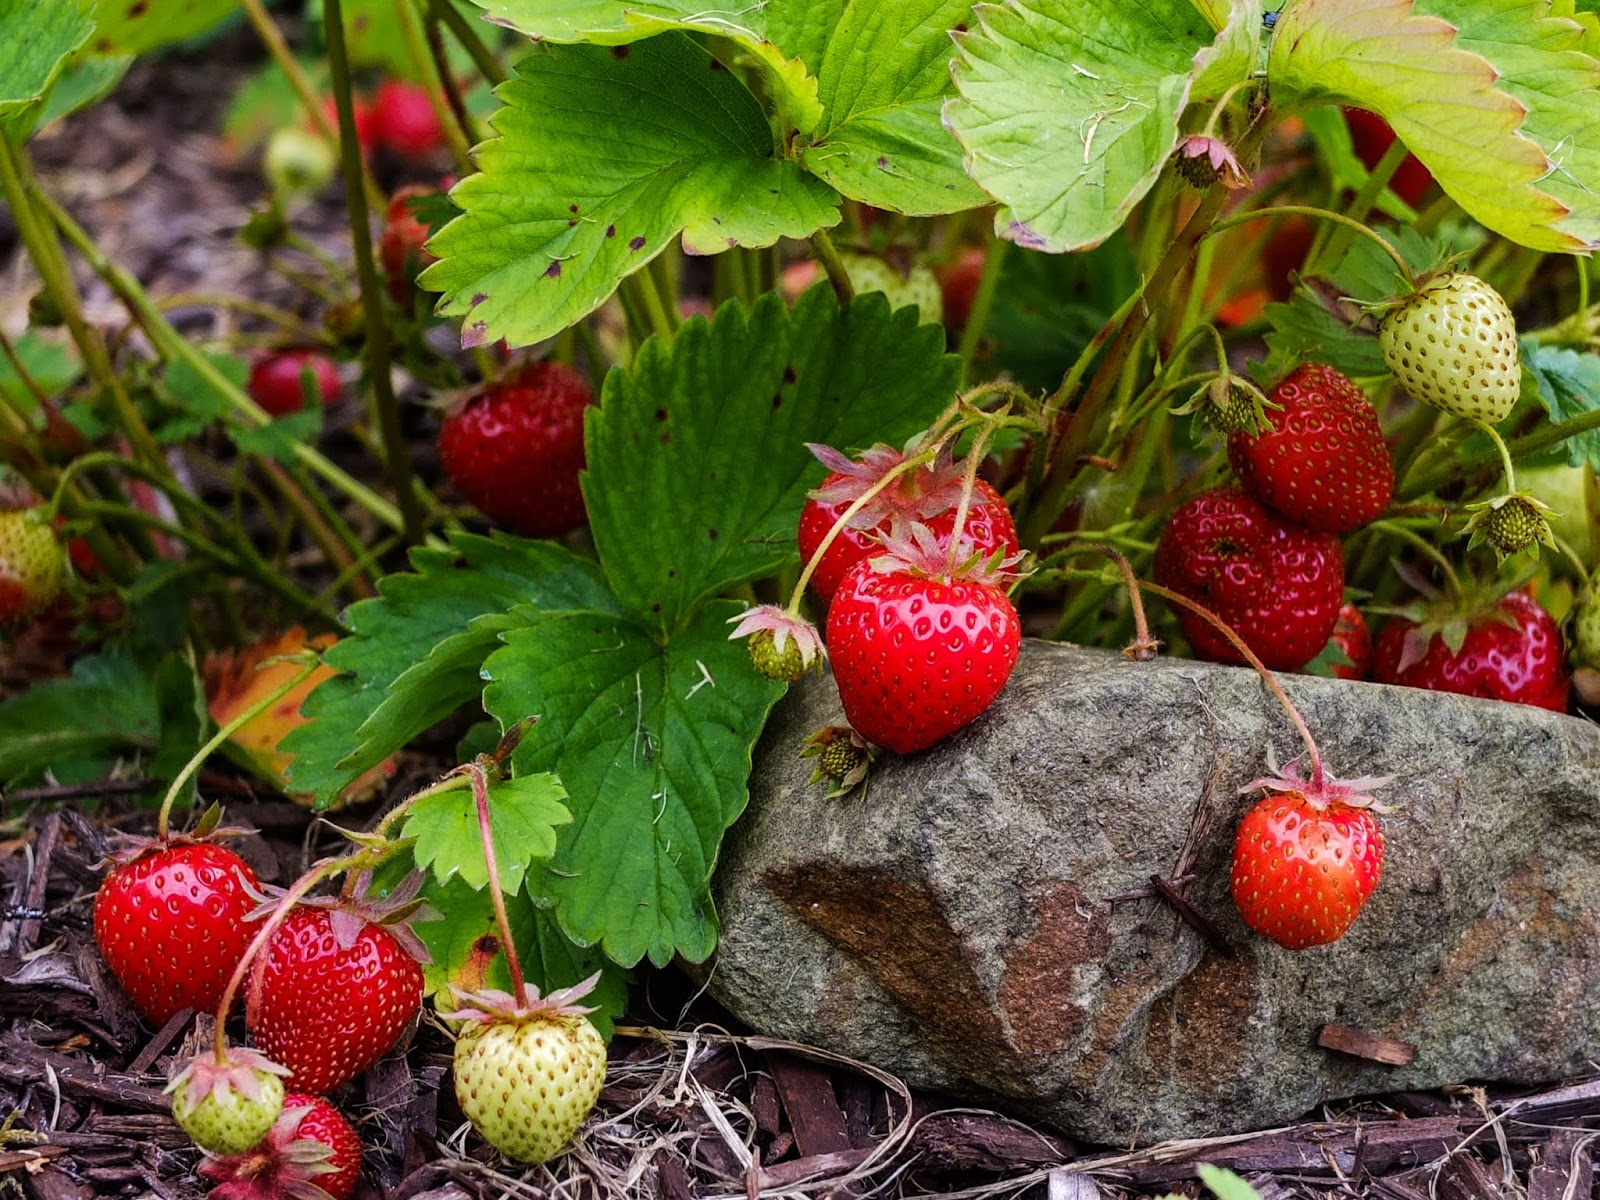 Bunches of red ripe strawberries.